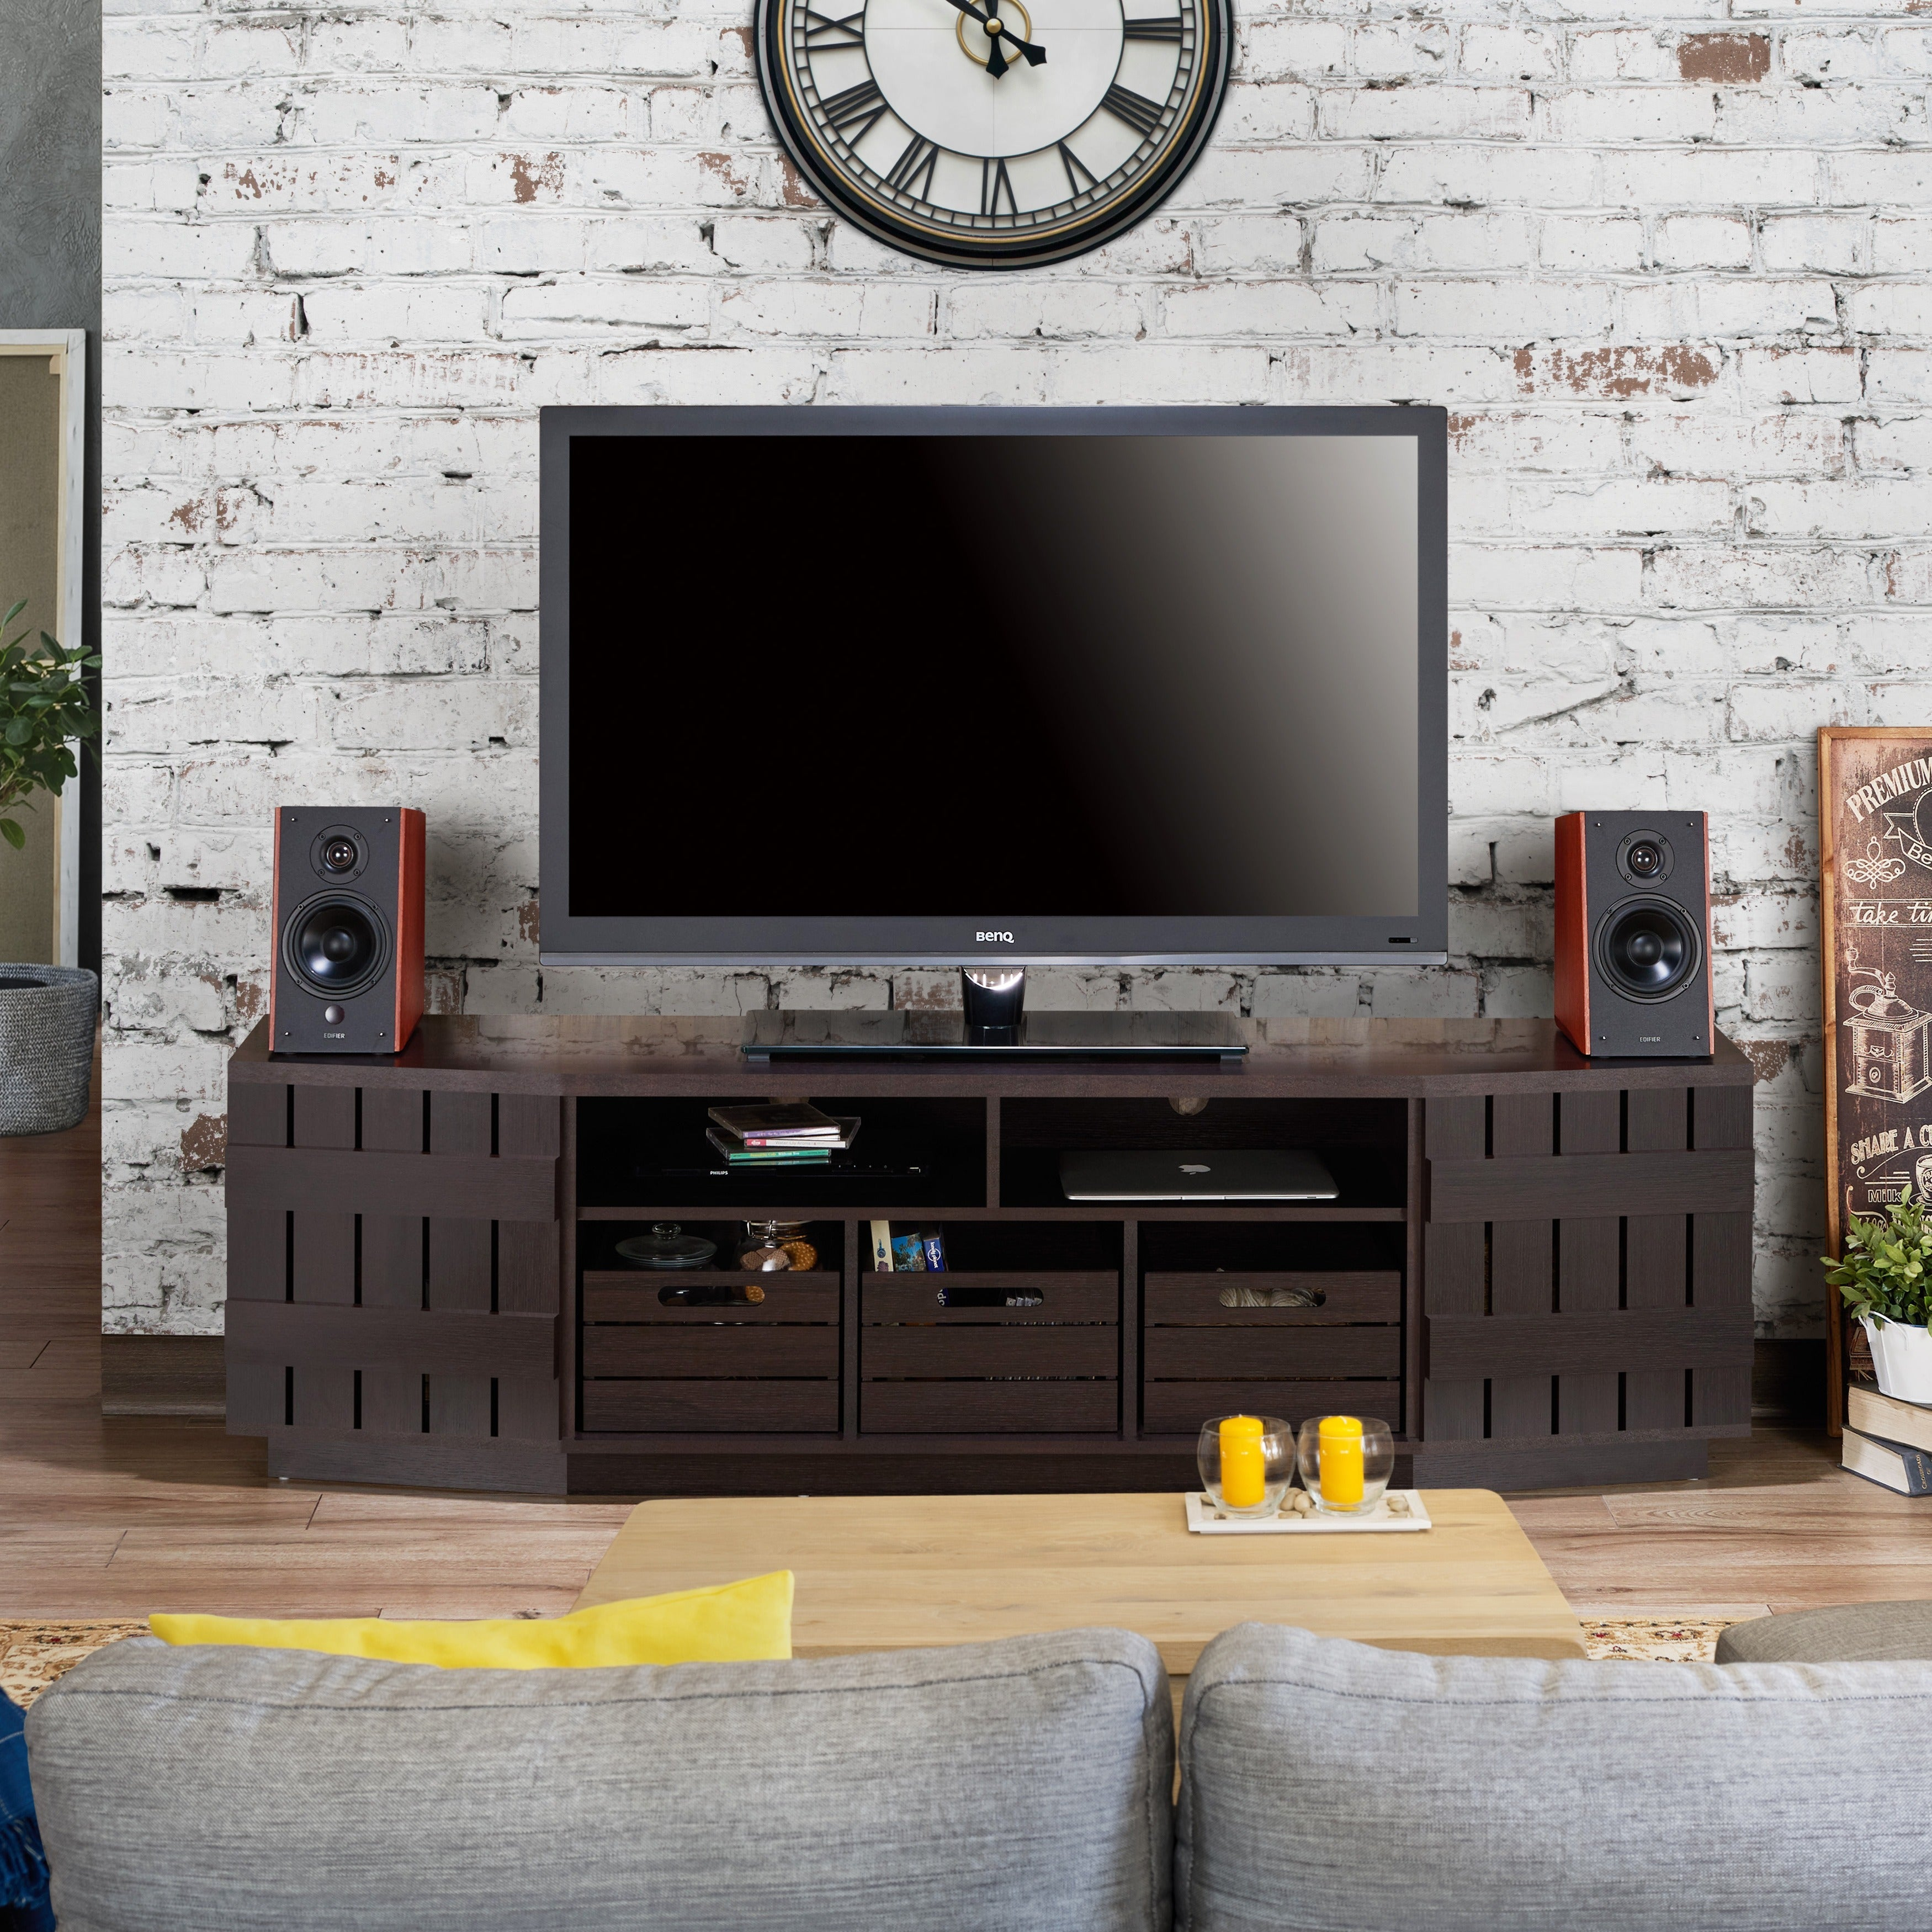 Furniture of America Harla Rustic 70inch TV Stand with Removable